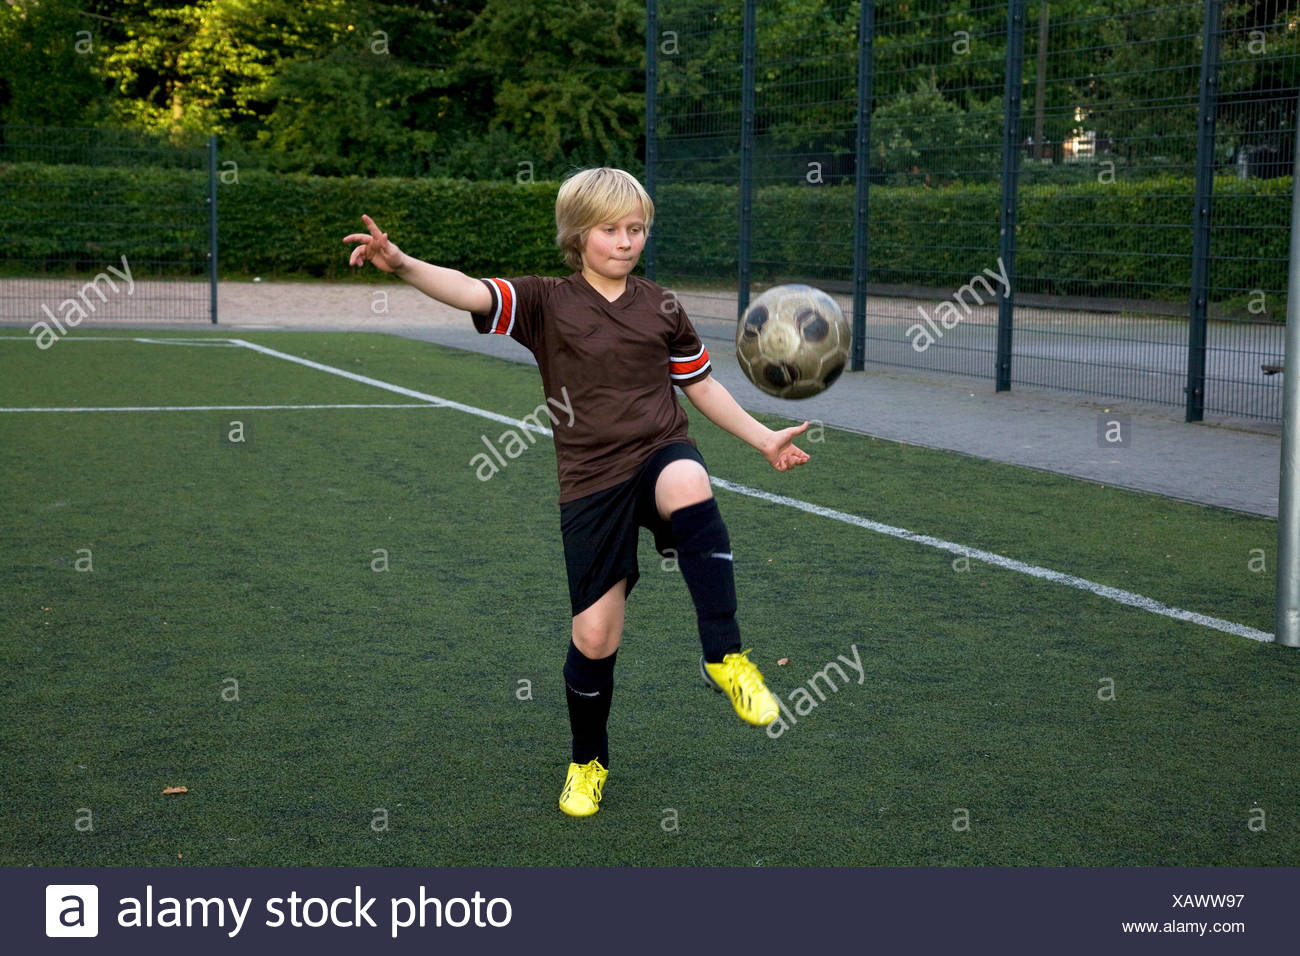 boy at soccer practice - Stock Image